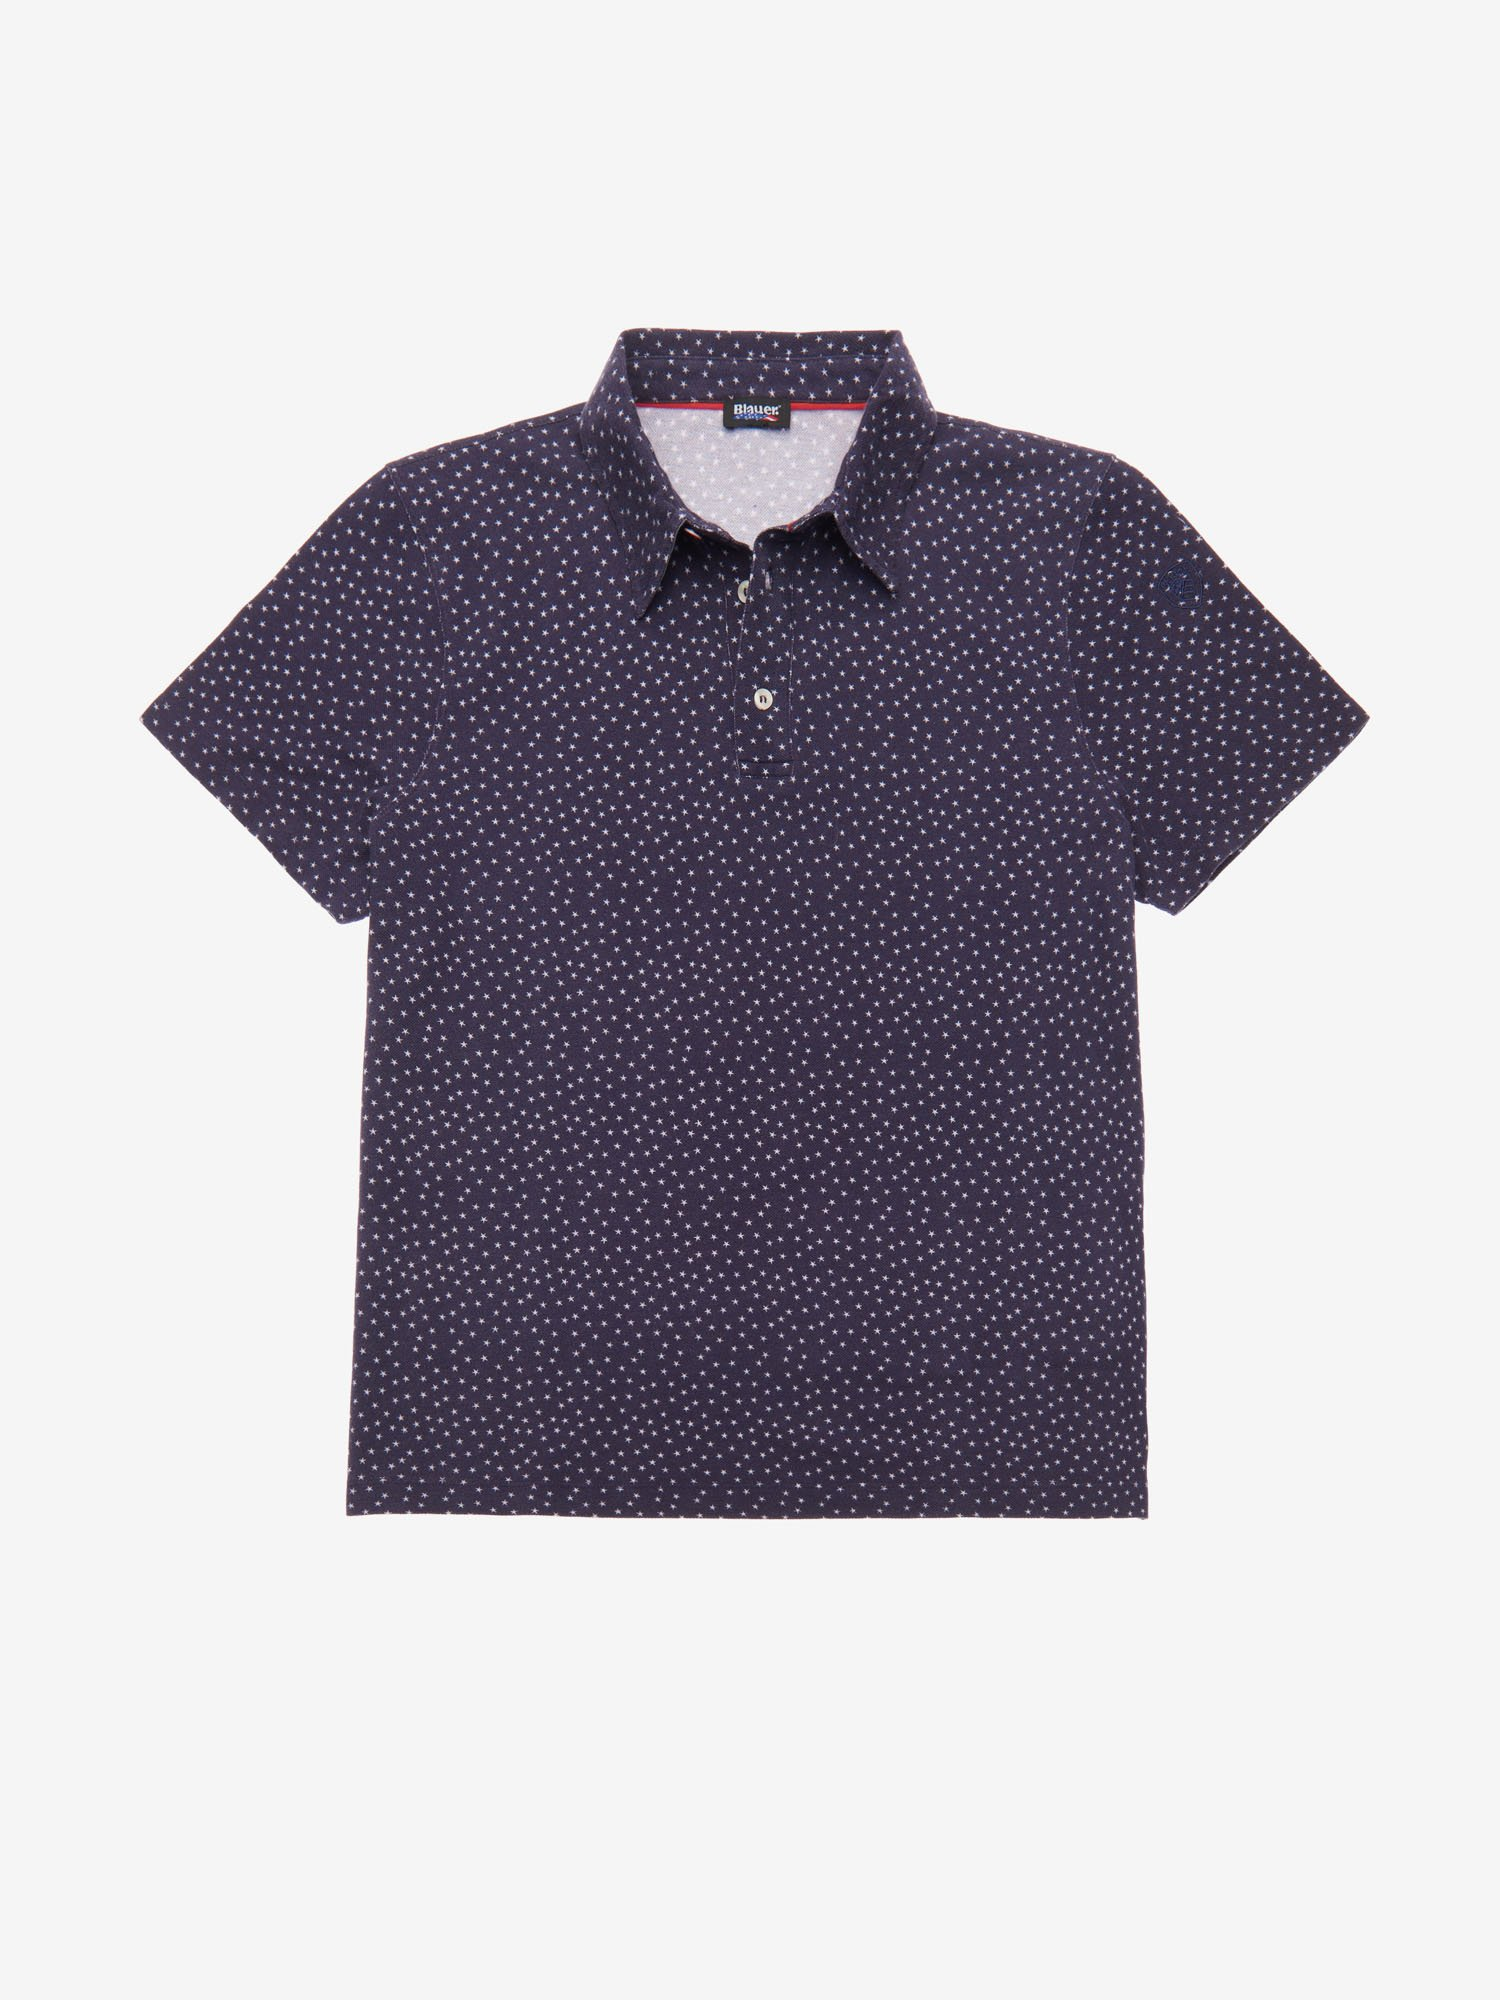 STAR-PRINT POLO SHIRT - Blauer